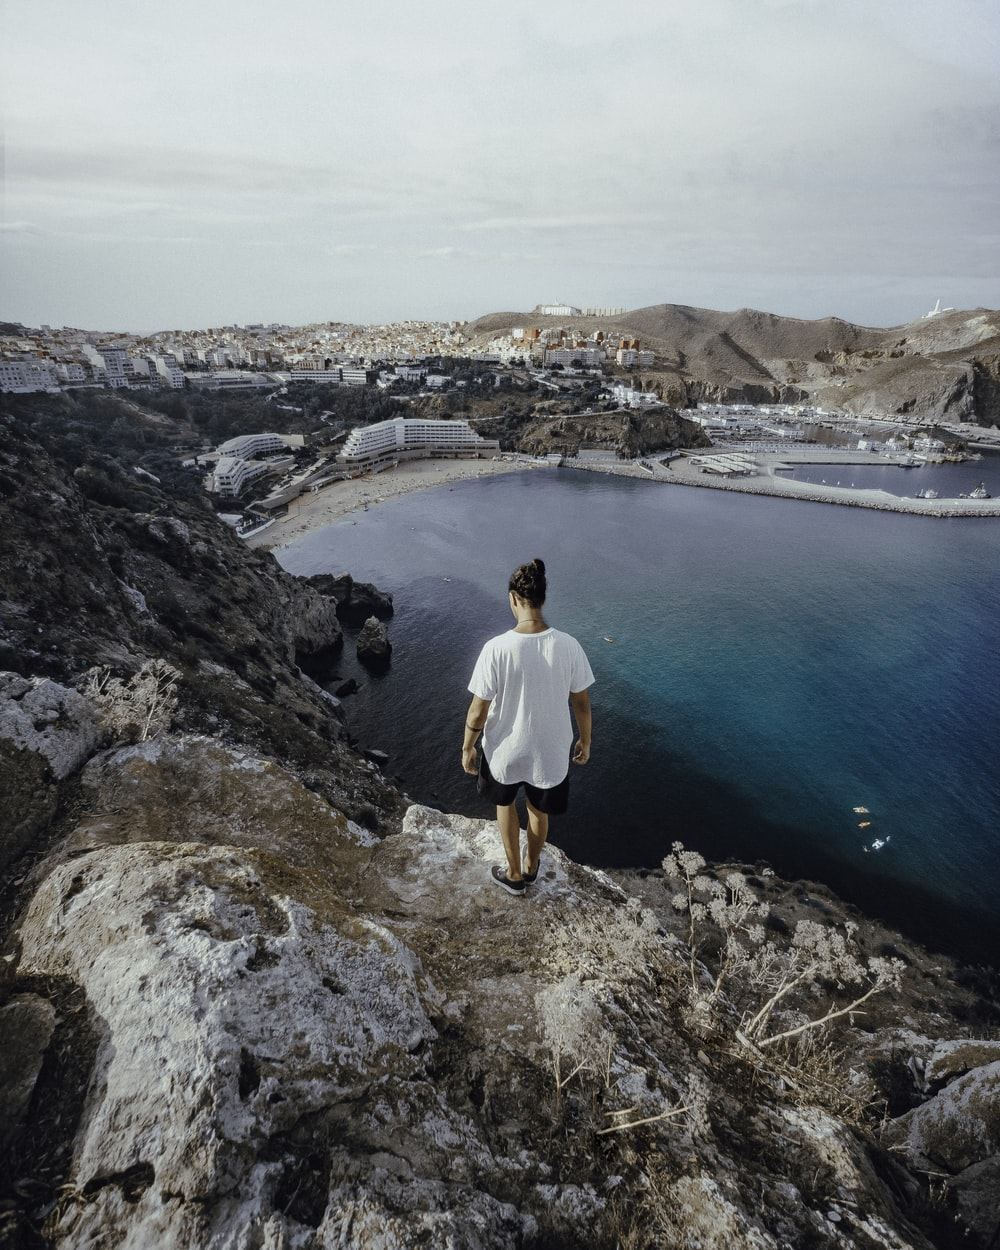 man in white long sleeve shirt and black shorts standing on rocky mountain looking at blue